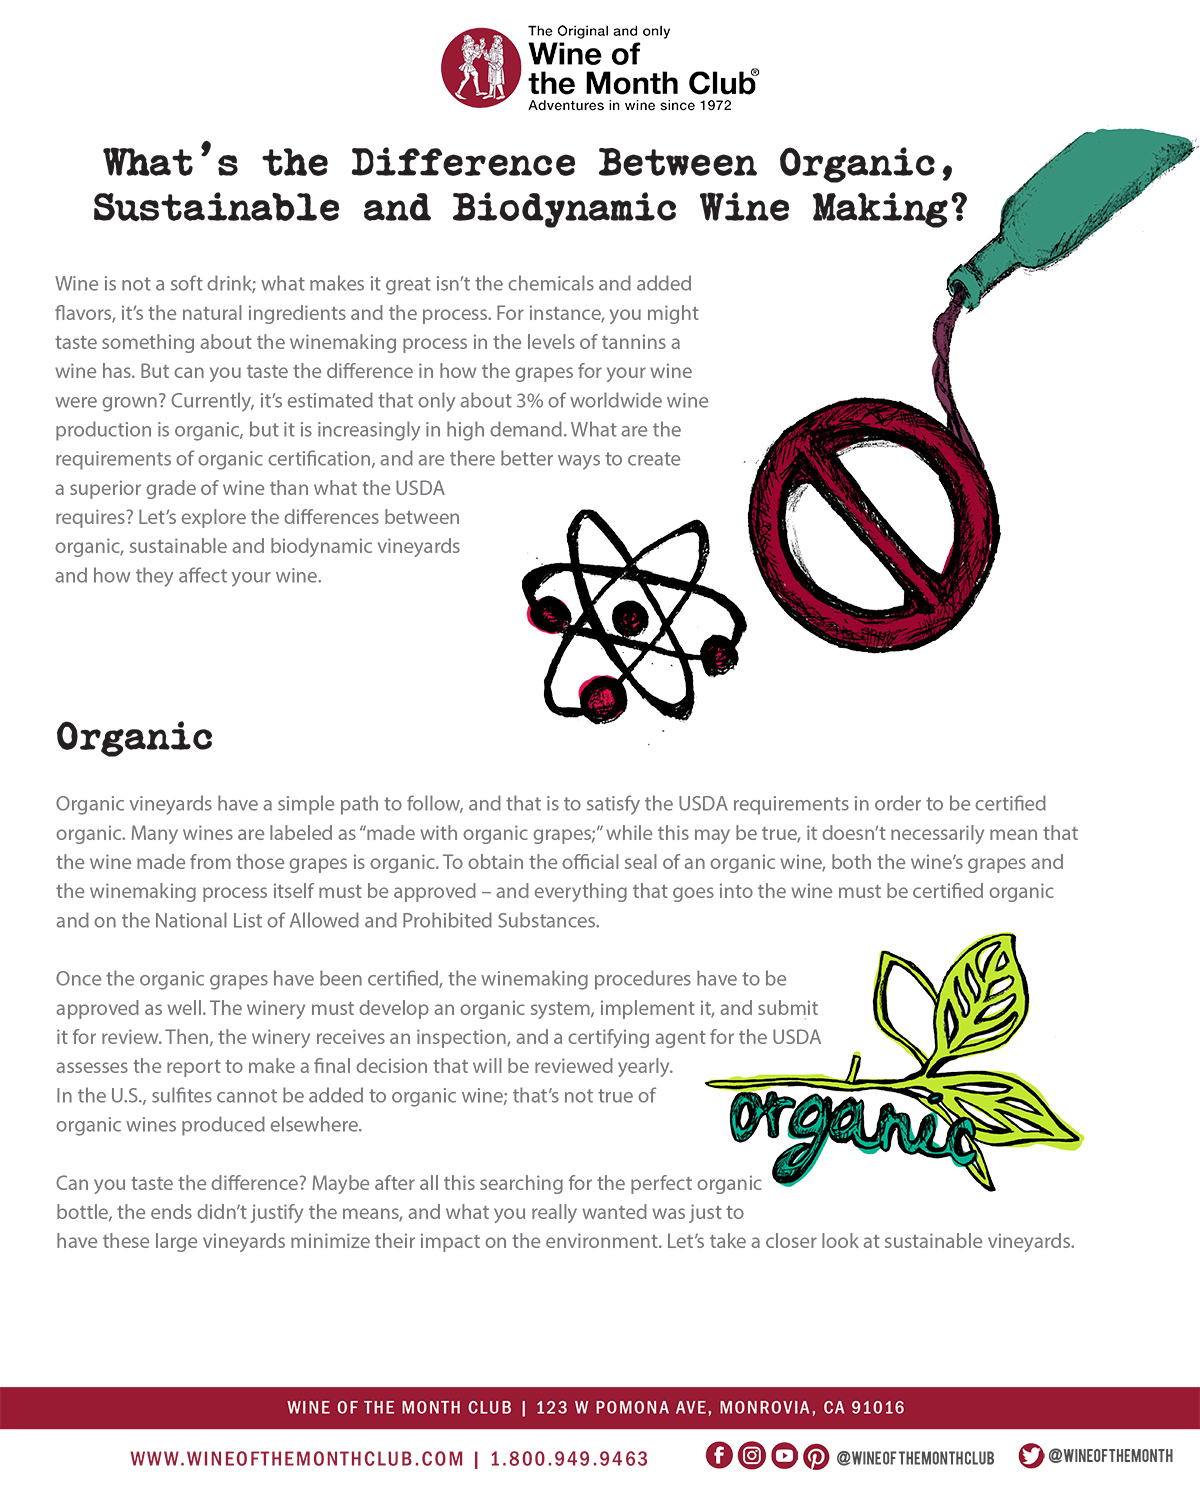 Organic, Sustainable, Biodynamic